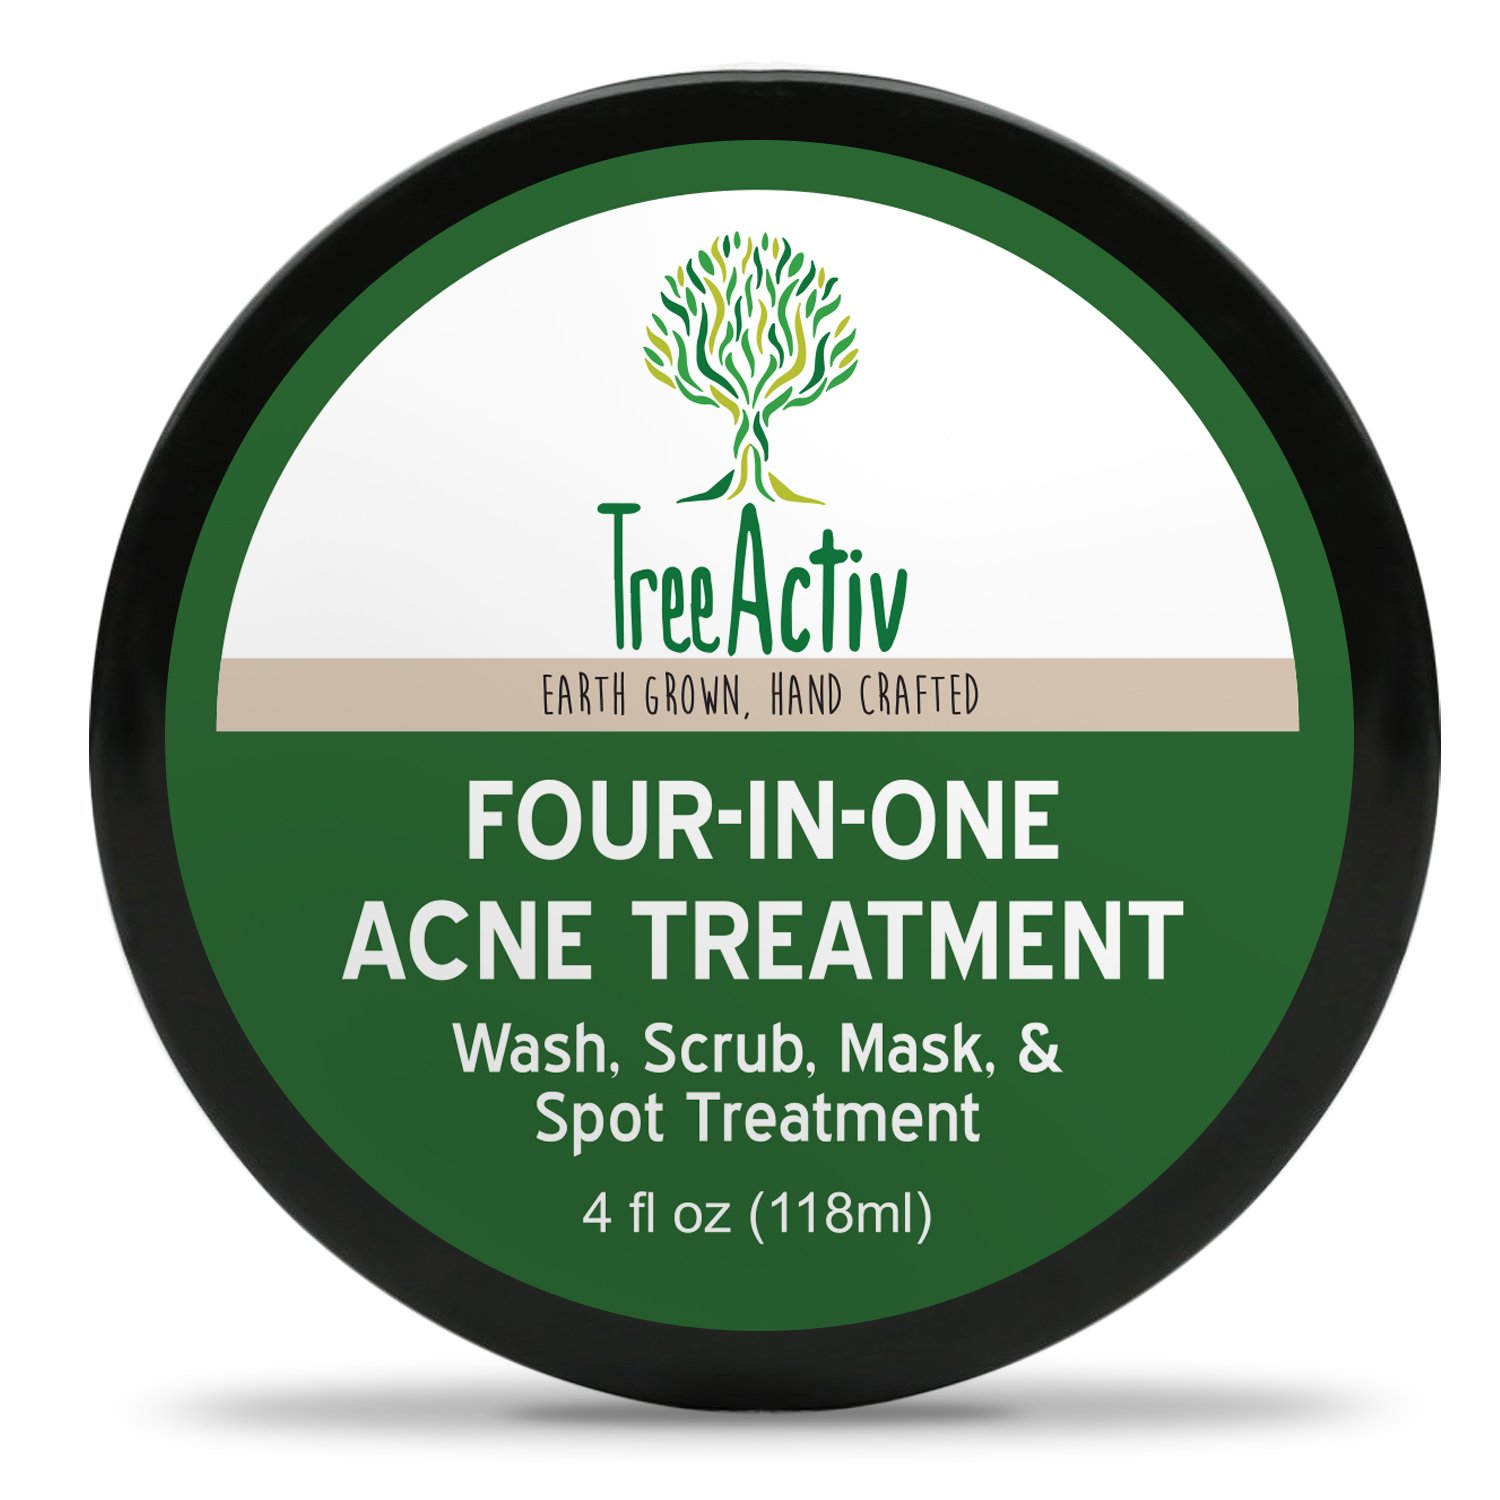 TreeActiv Four-in-One Acne Treatment, Wash, Scrub, Mask, and Spot Treatment, Heals Rosacea, Exfoliating Sugar, Face or Body, Natural Sulfur Clear Skin Cleanser, Bentonite (4 Oz)